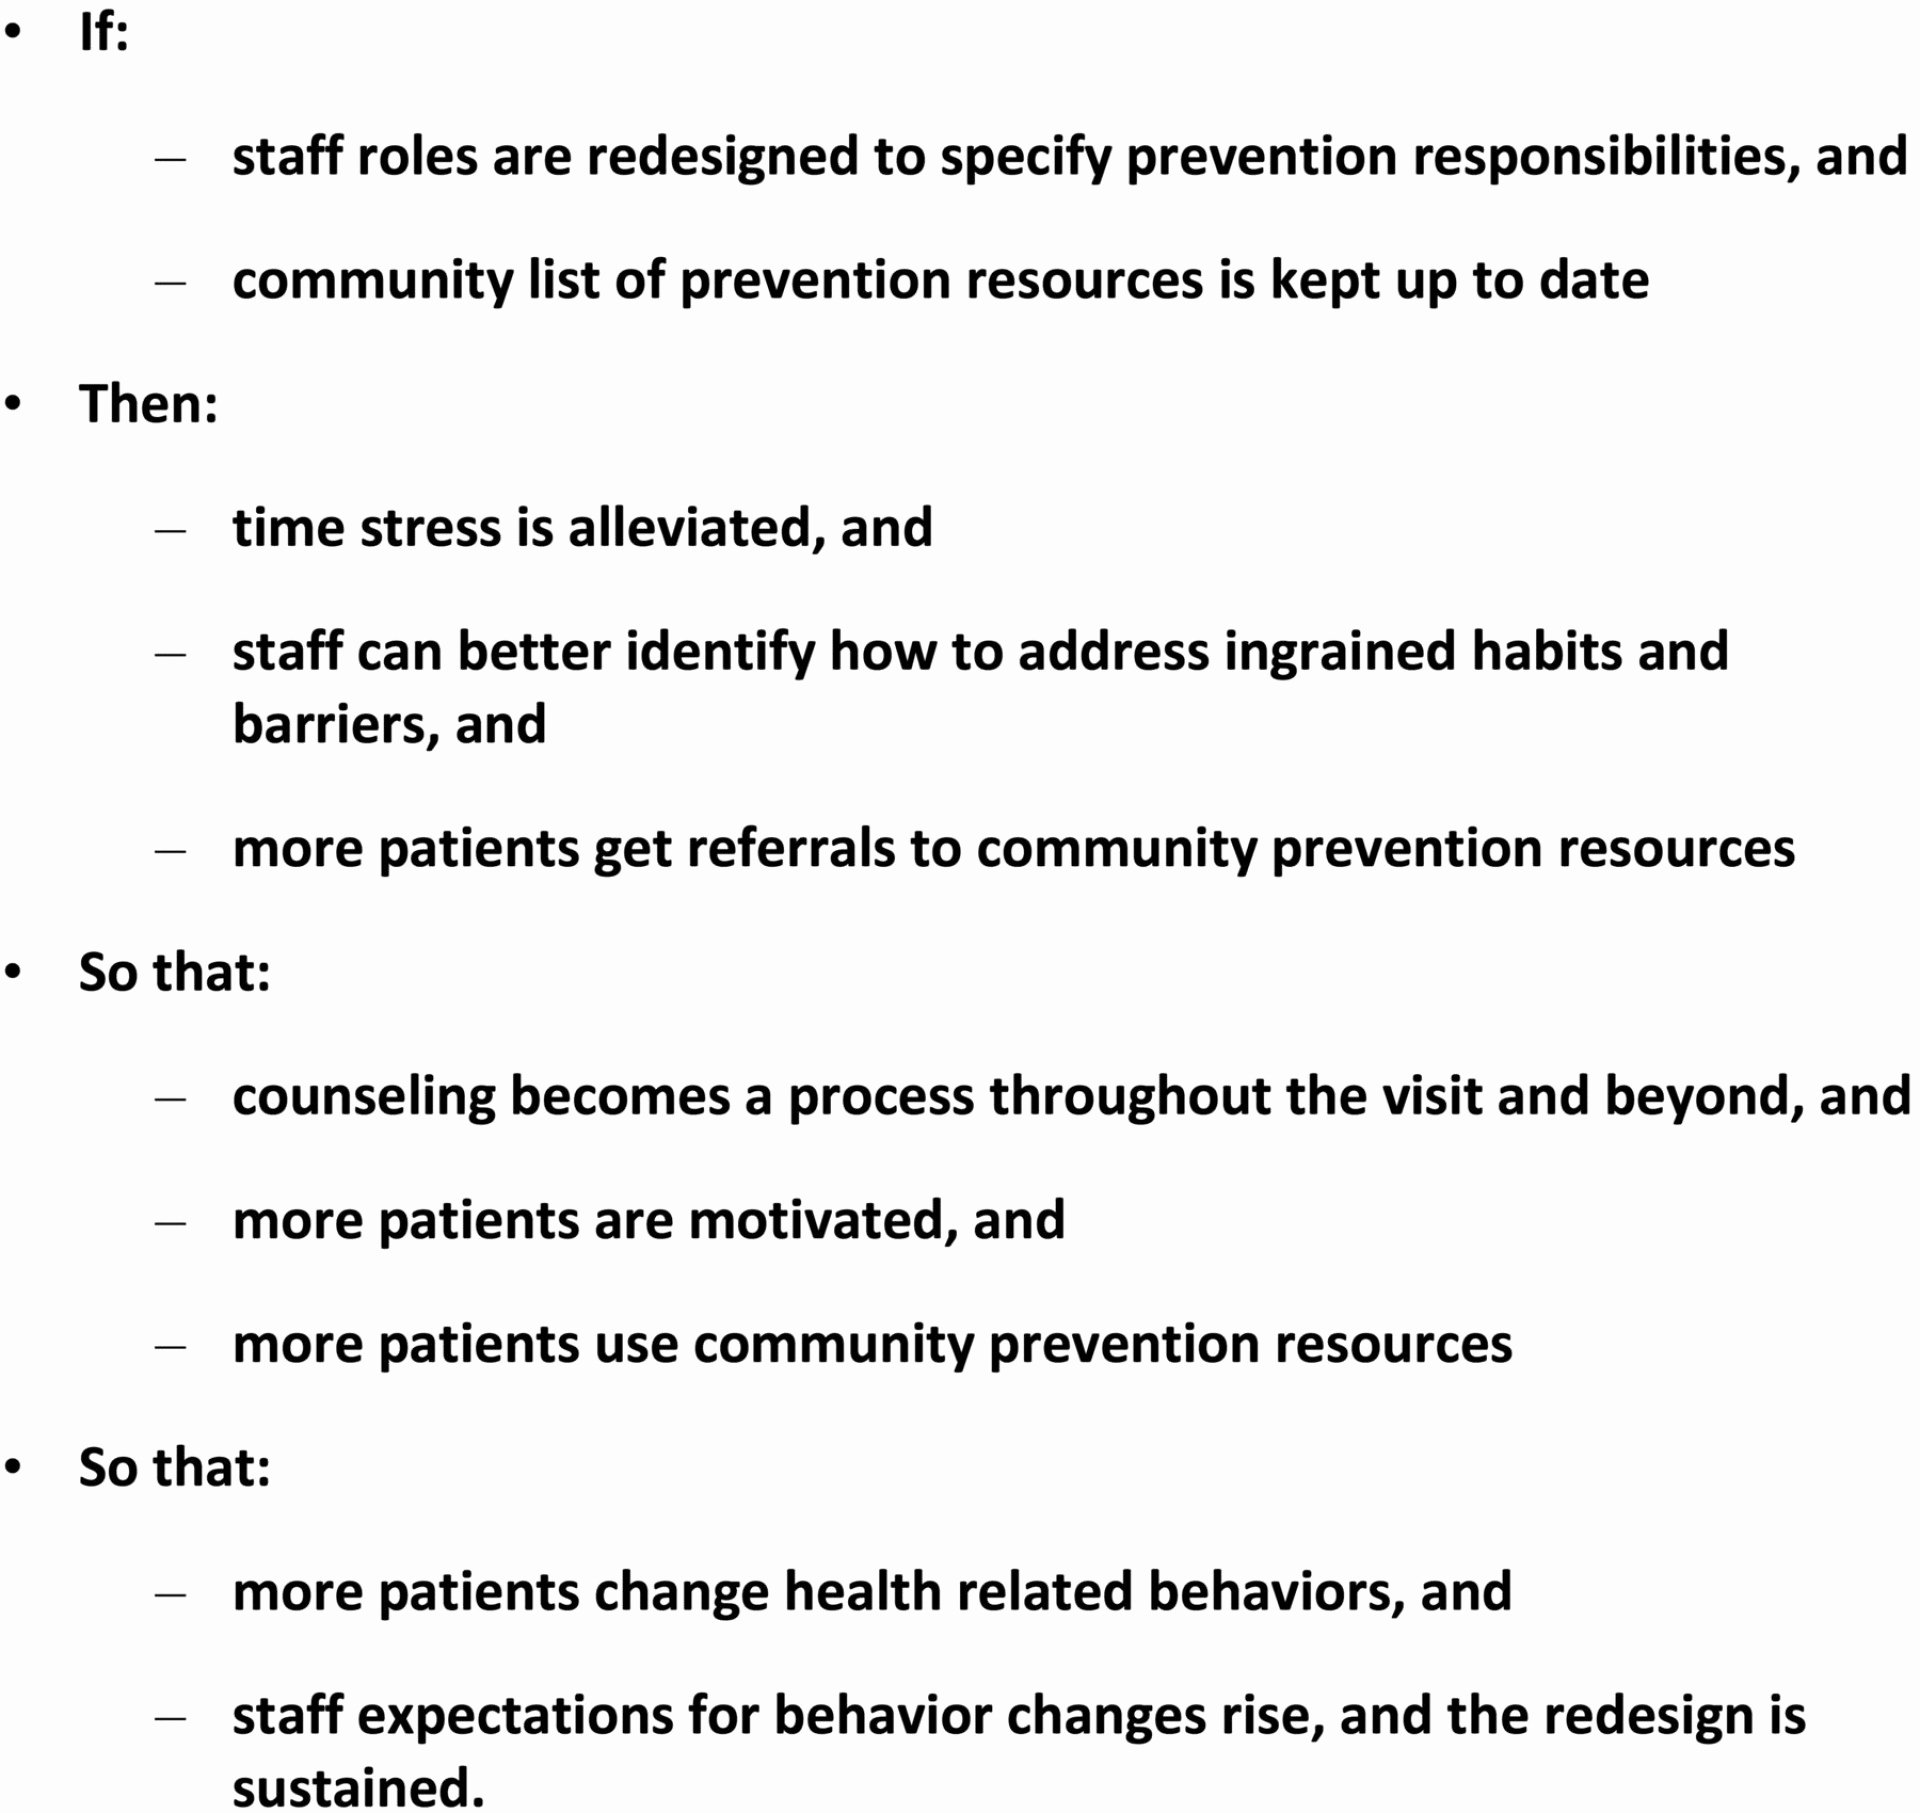 Quality Improvement Plan Template Healthcare New Fascinating Quality Improvement Plan Template Healthcare